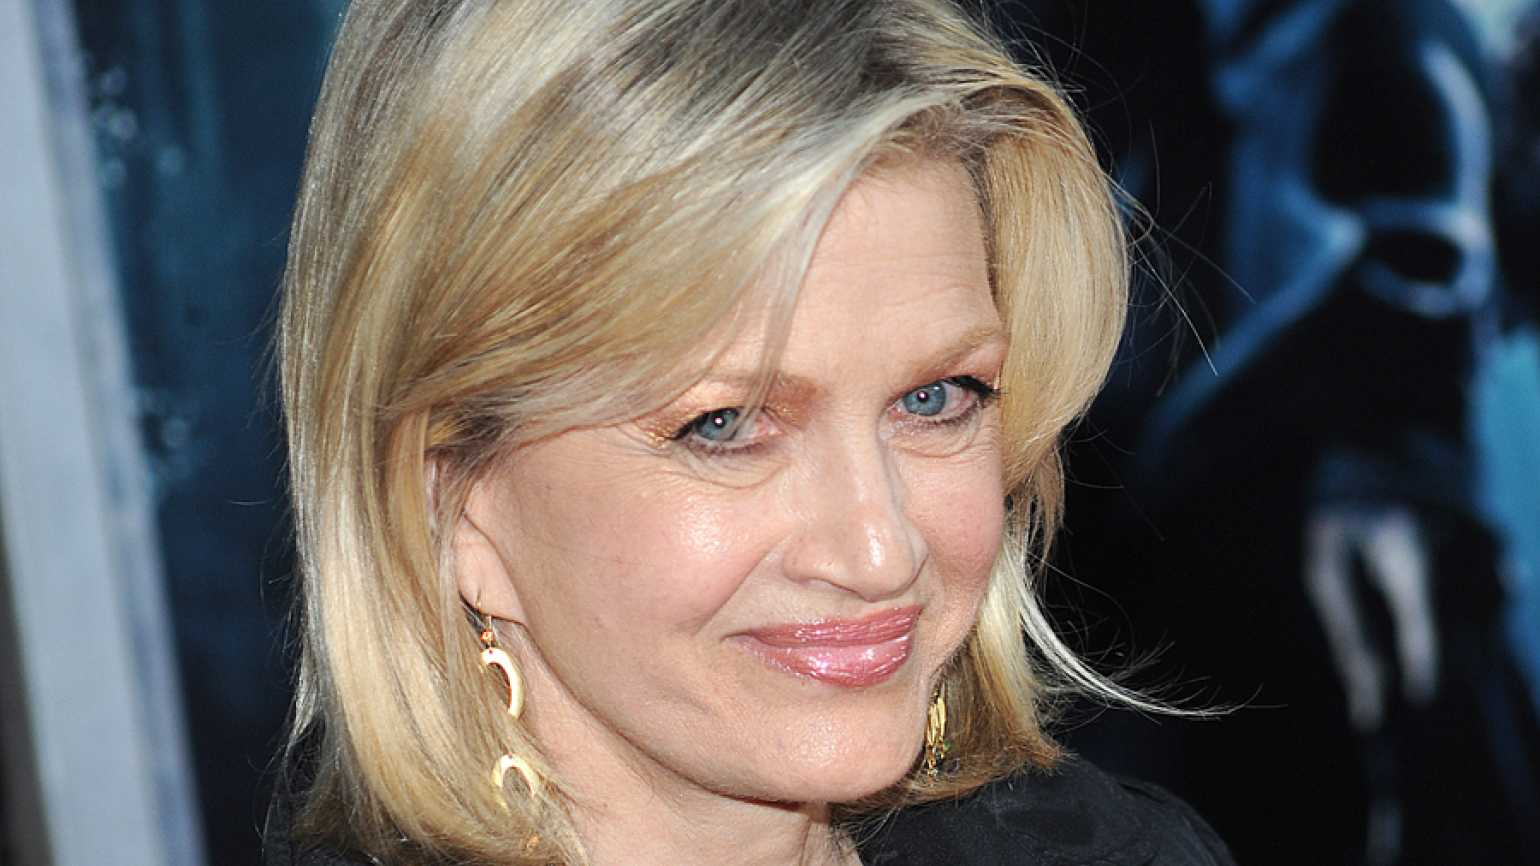 Diane Sawyer's motivational story about being a journalist